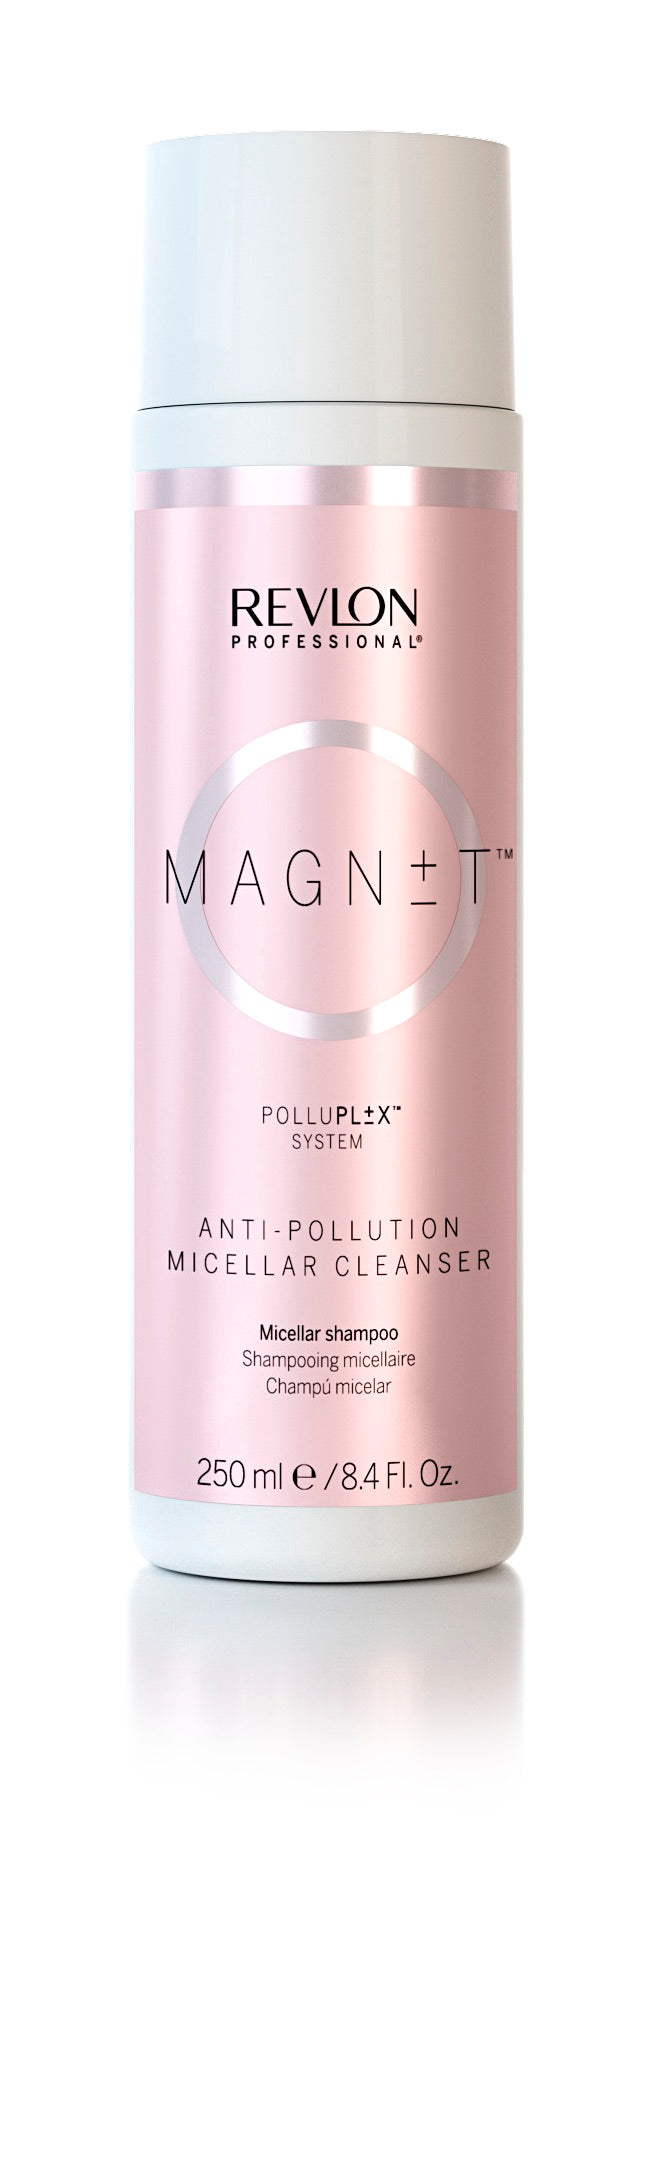 Revlon Magnet Anti-Pollution Micellar Cleanser